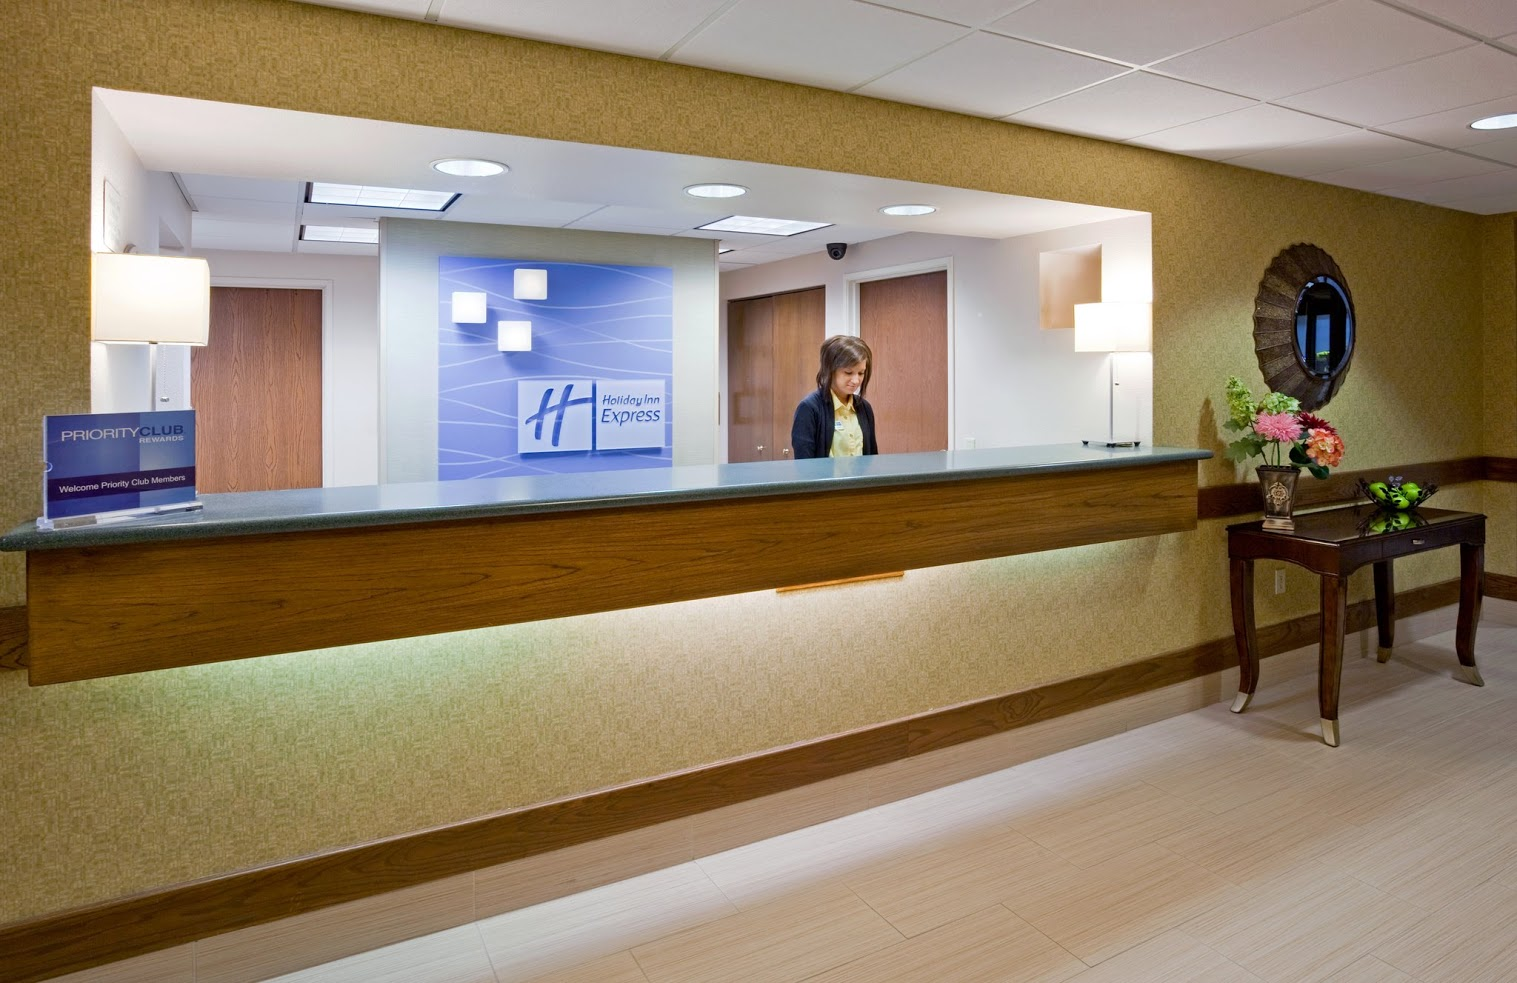 HOLIDAY INN EXPRESS SHEBOYGAN lobby.jpg